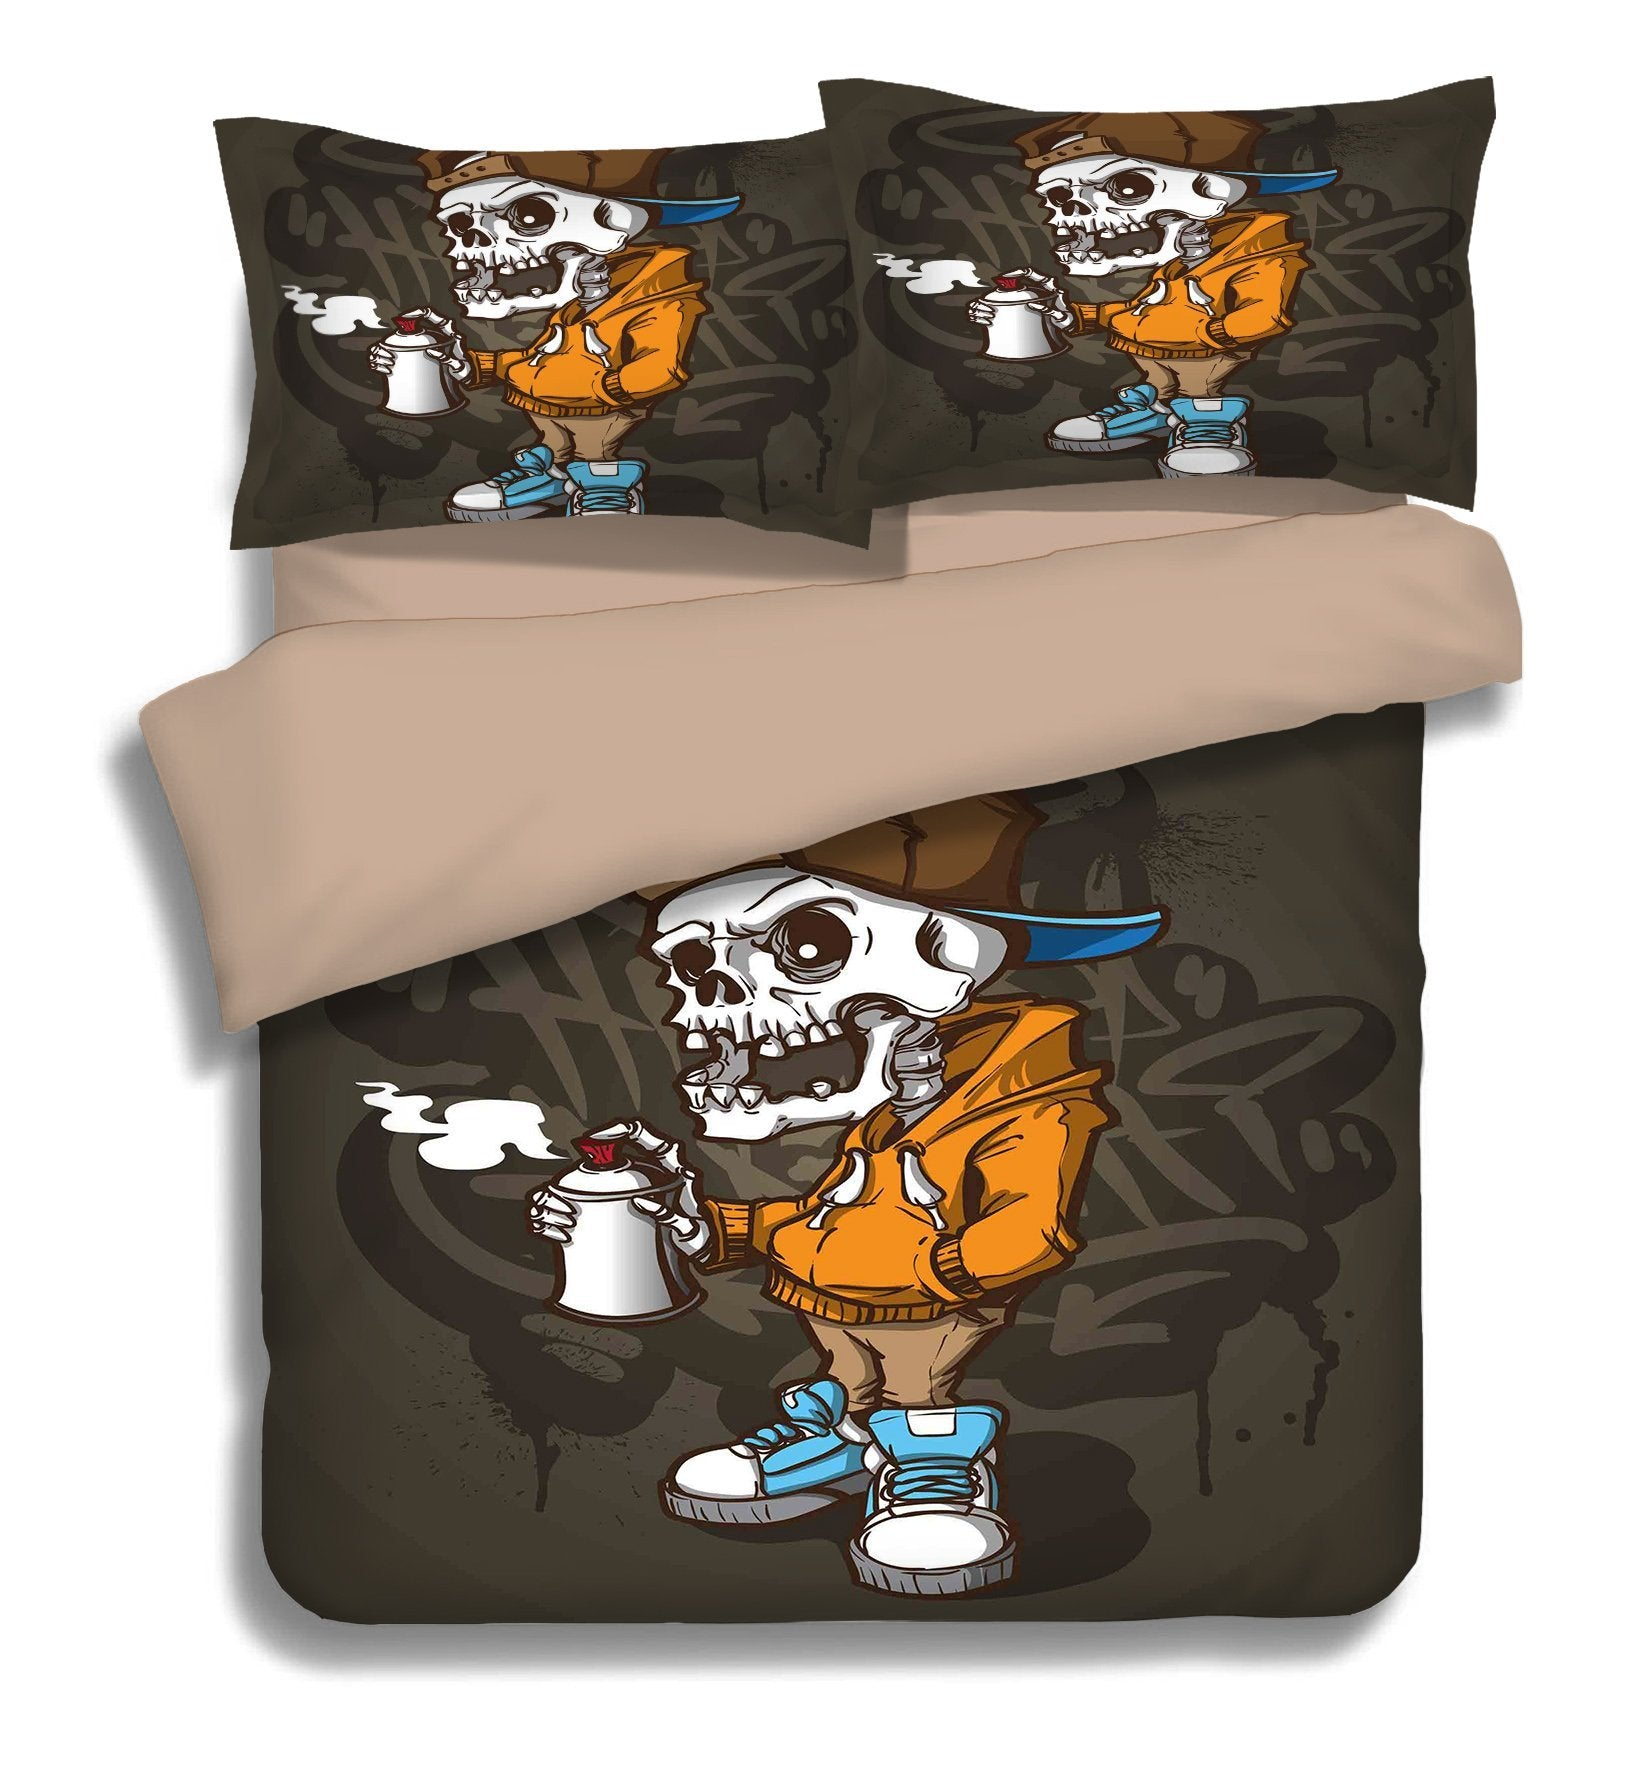 3D Bad Kids 120 Bed Pillowcases Quilt Wallpaper AJ Wallpaper